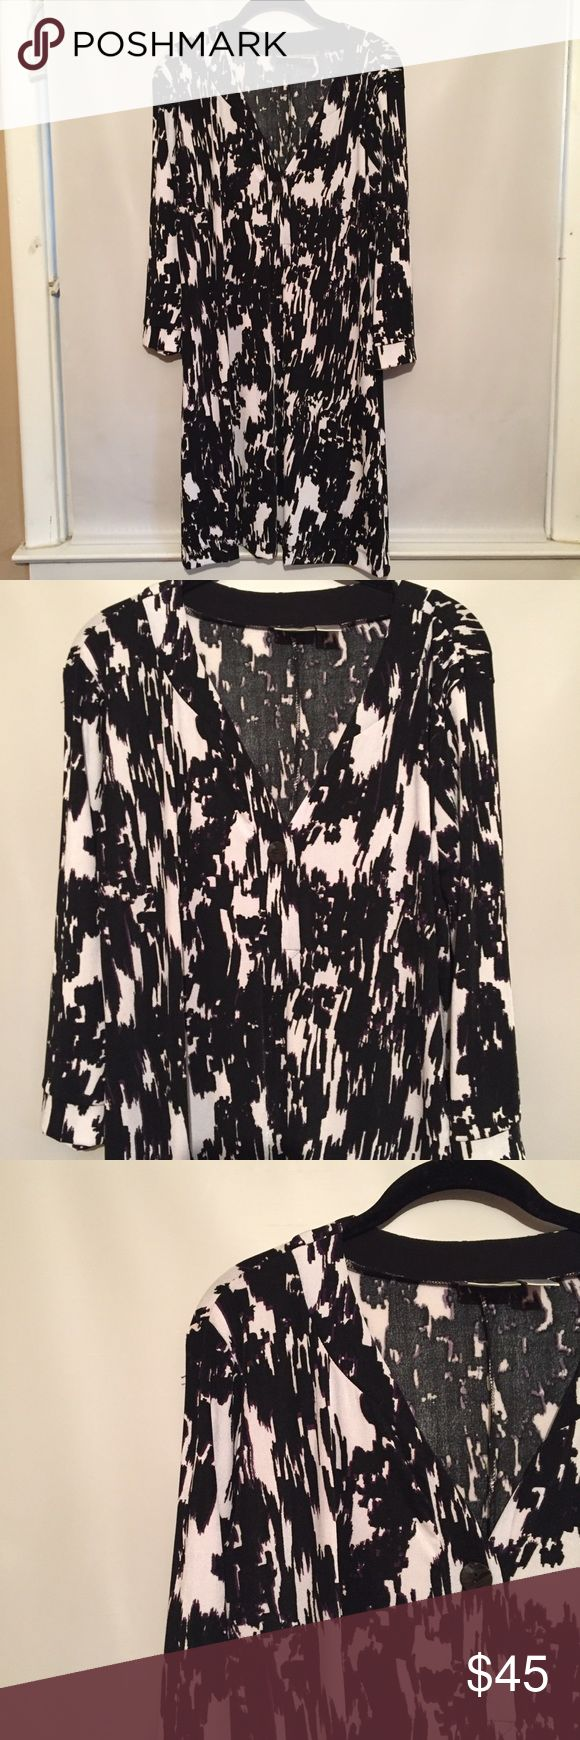 Chico's Long Sleeve Dress Pre-owned condition. Black and white long sleeved dress with purple accent. Size marked 2, but would fit a large or size 12. Chico's Dresses Midi